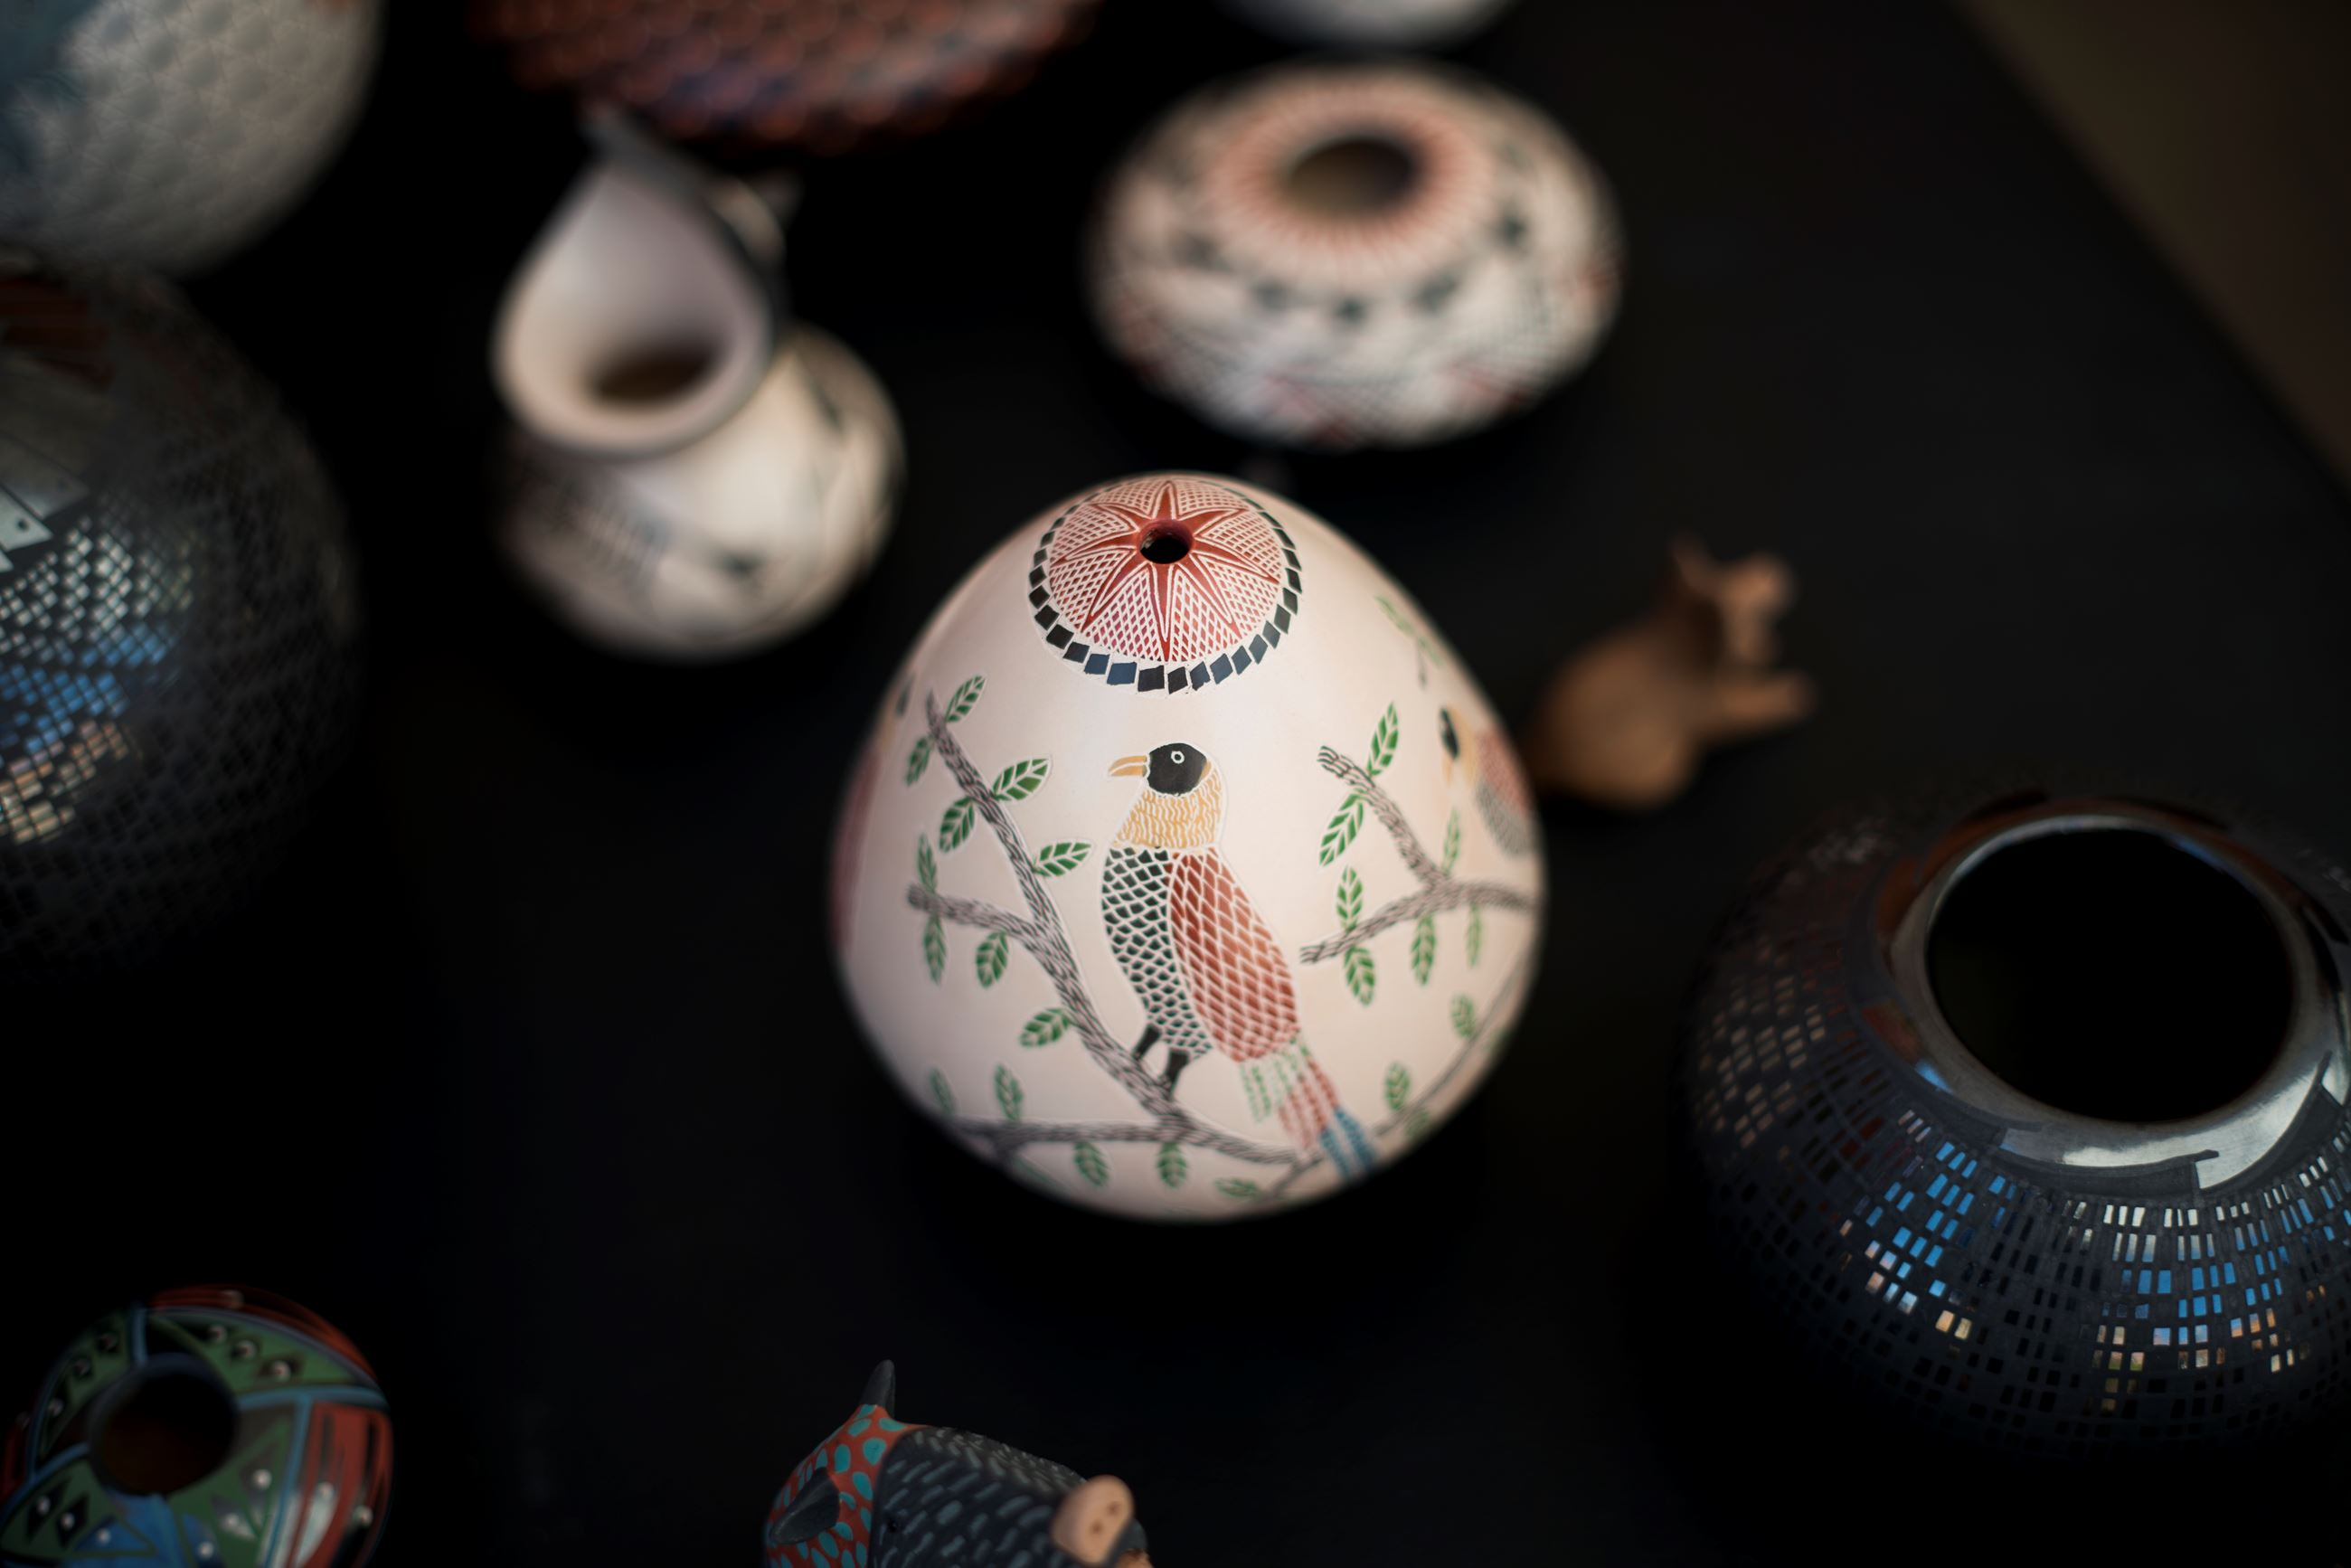 pottery with bird